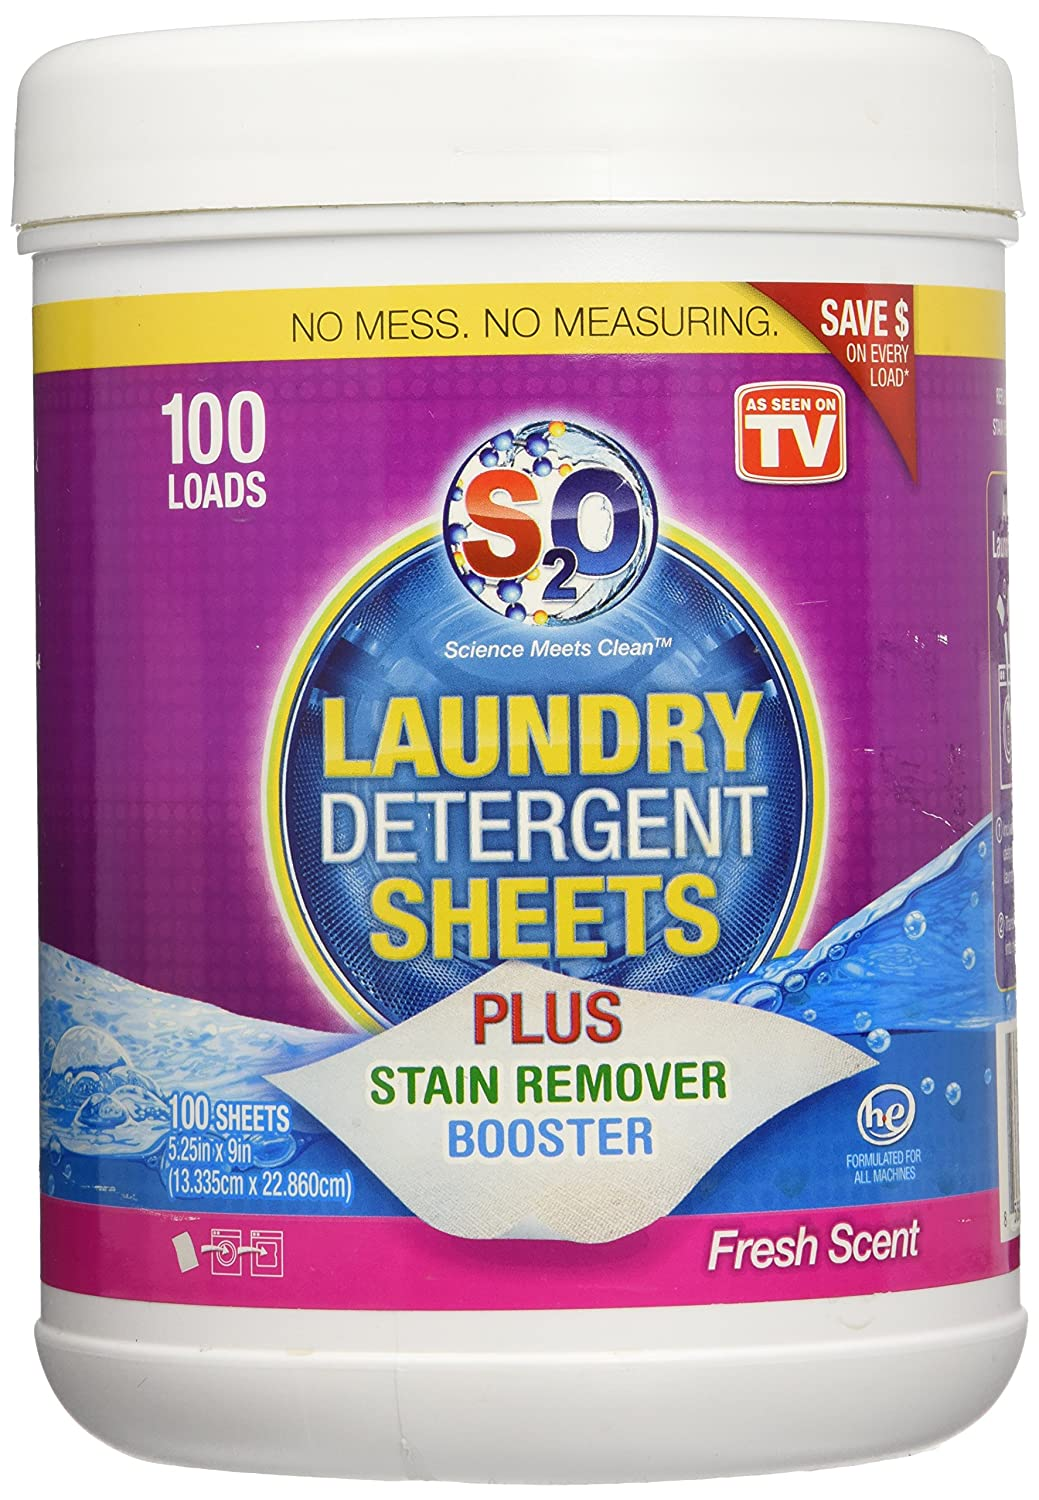 S2o laundry detergent sheets plus stain remover booster fresh scent 100 loads ebay - Wash white sheets keep fresh ...